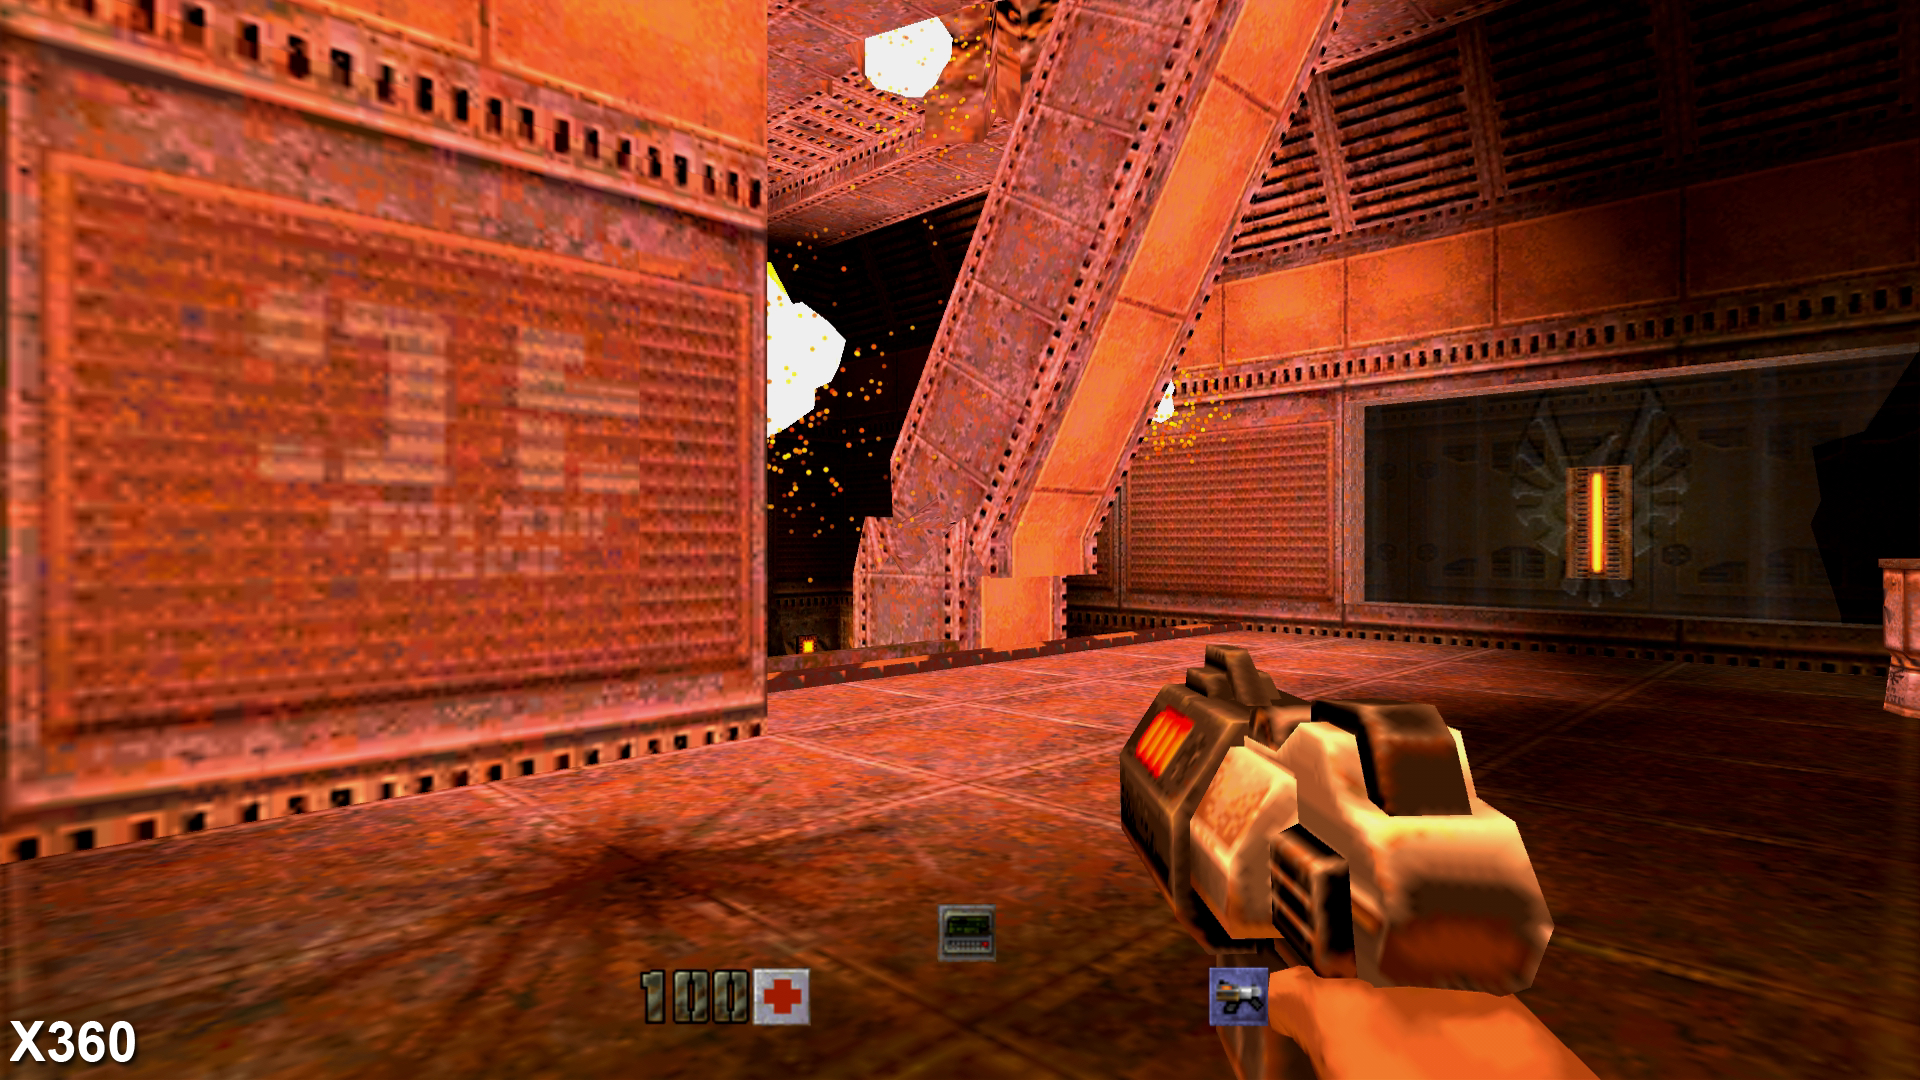 Quake 2 on Xbox 360: the first console HD remaster